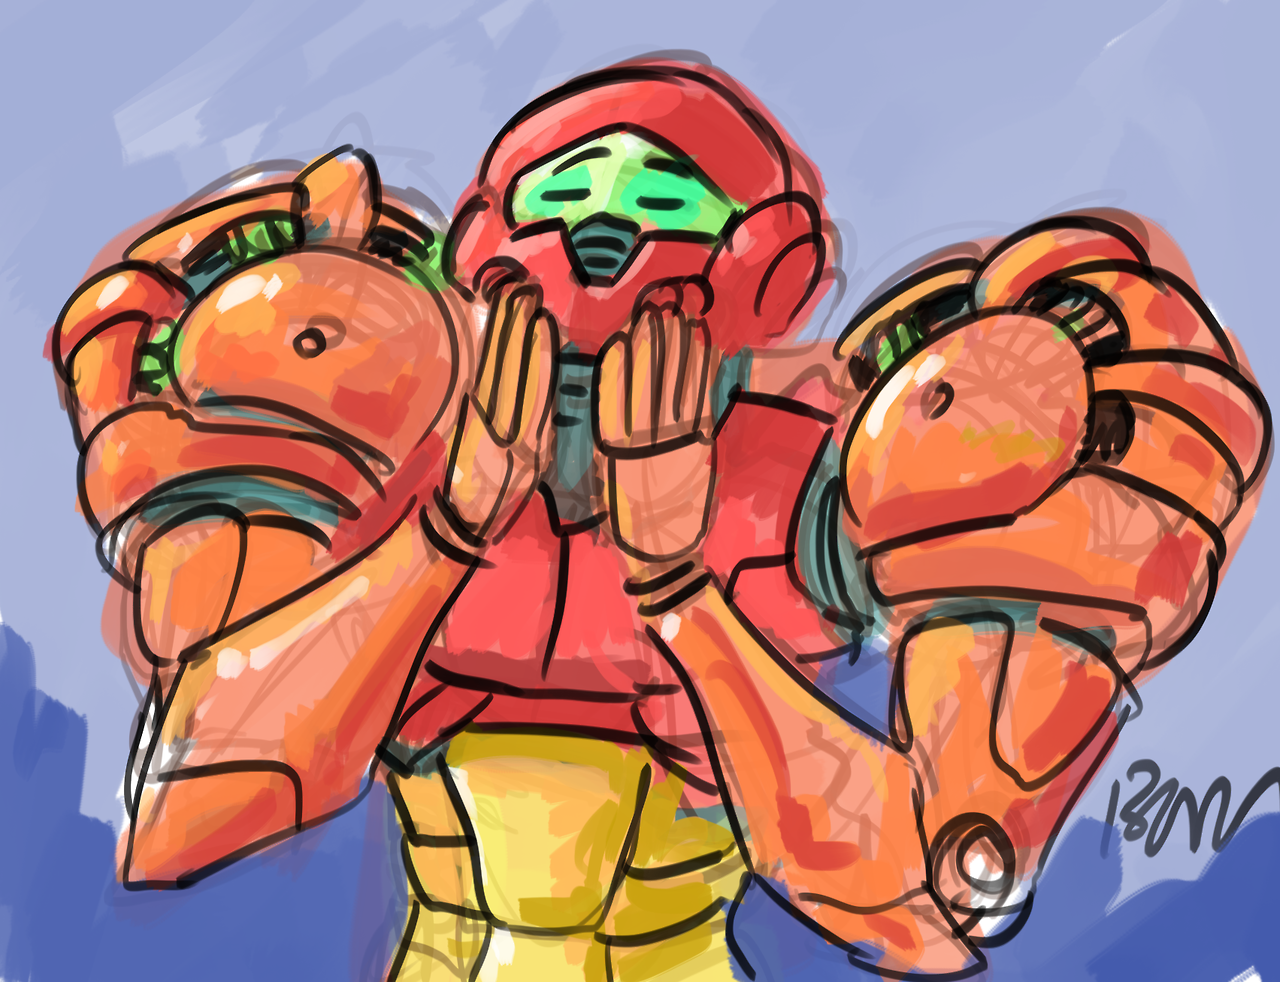 41dbf993655656678b29fdbcc74cfd06 pleased samus metroid and meme